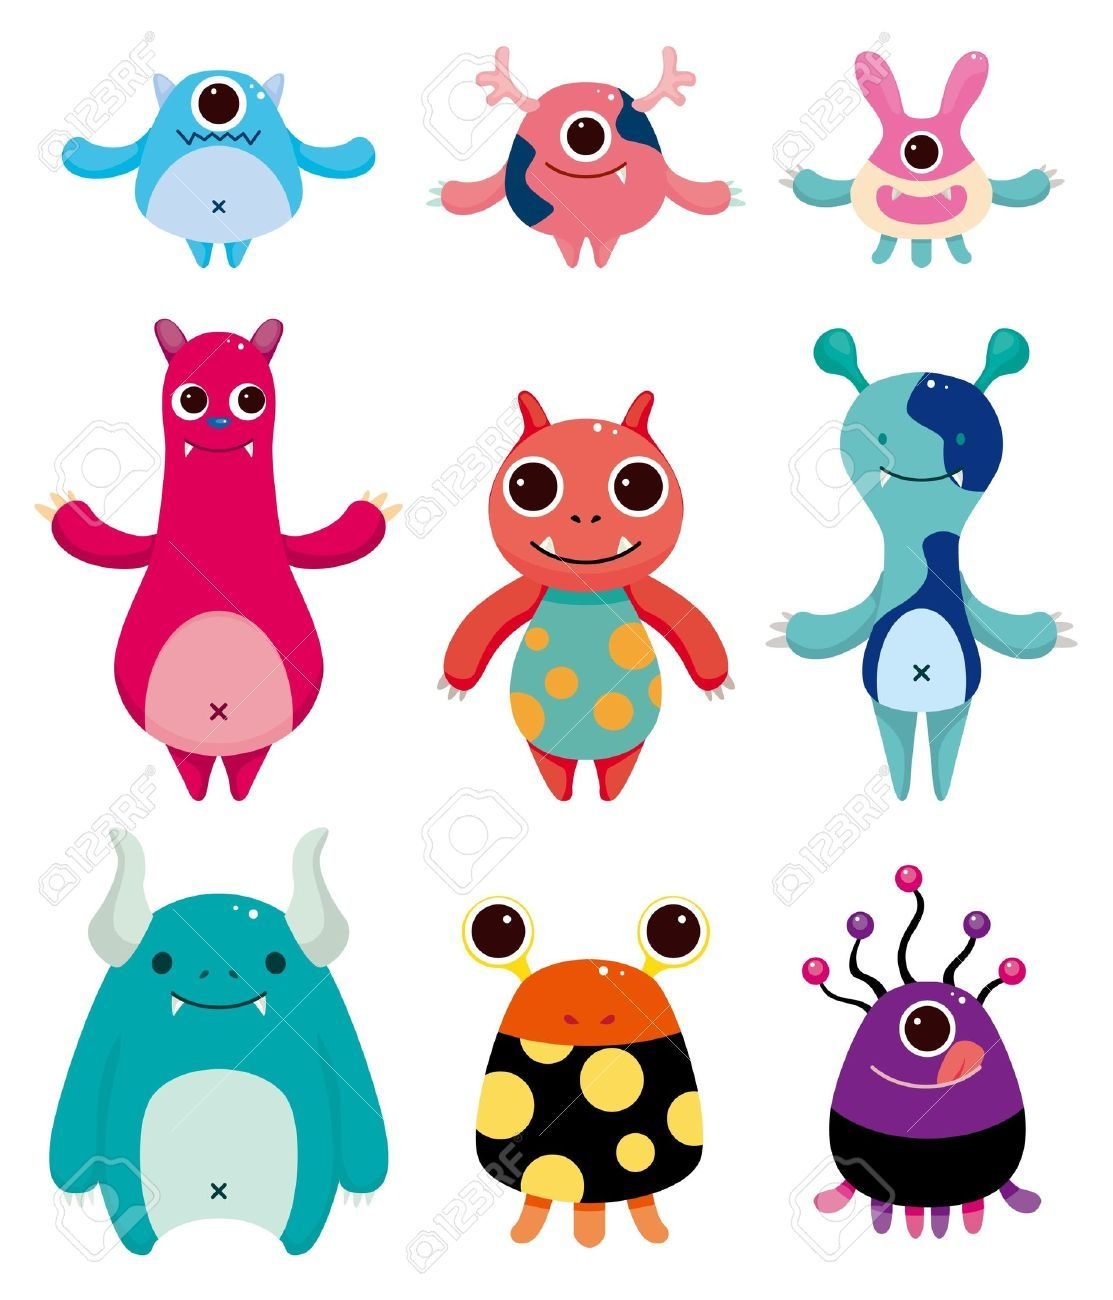 cute monster illustrations google search cute monsters